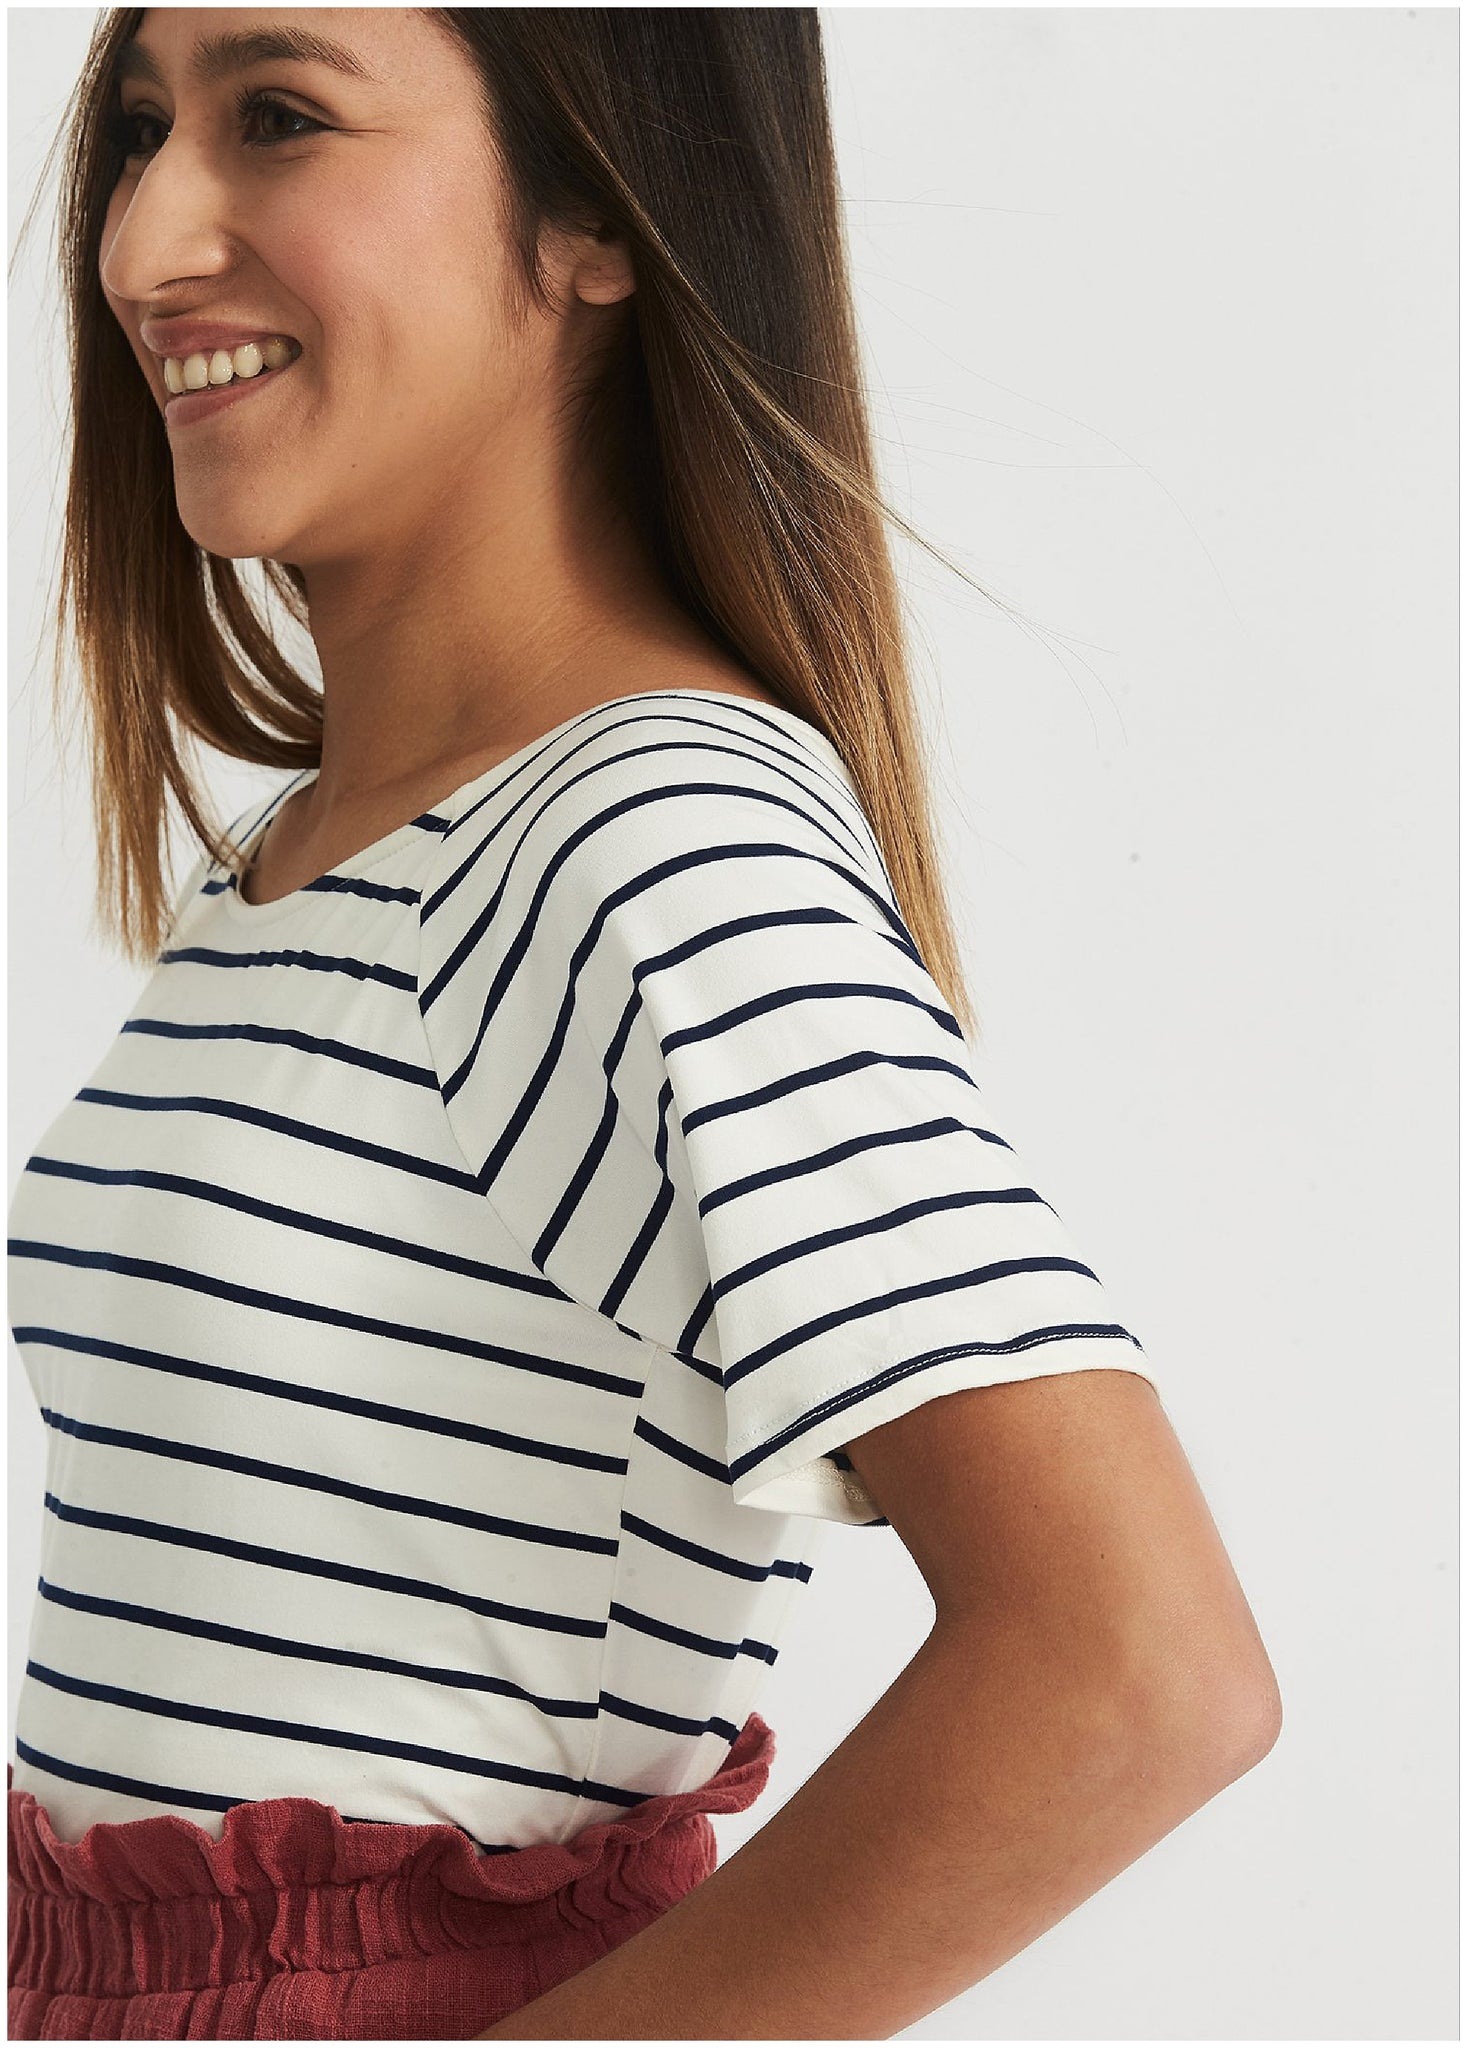 Modest Black and White Striped Tee